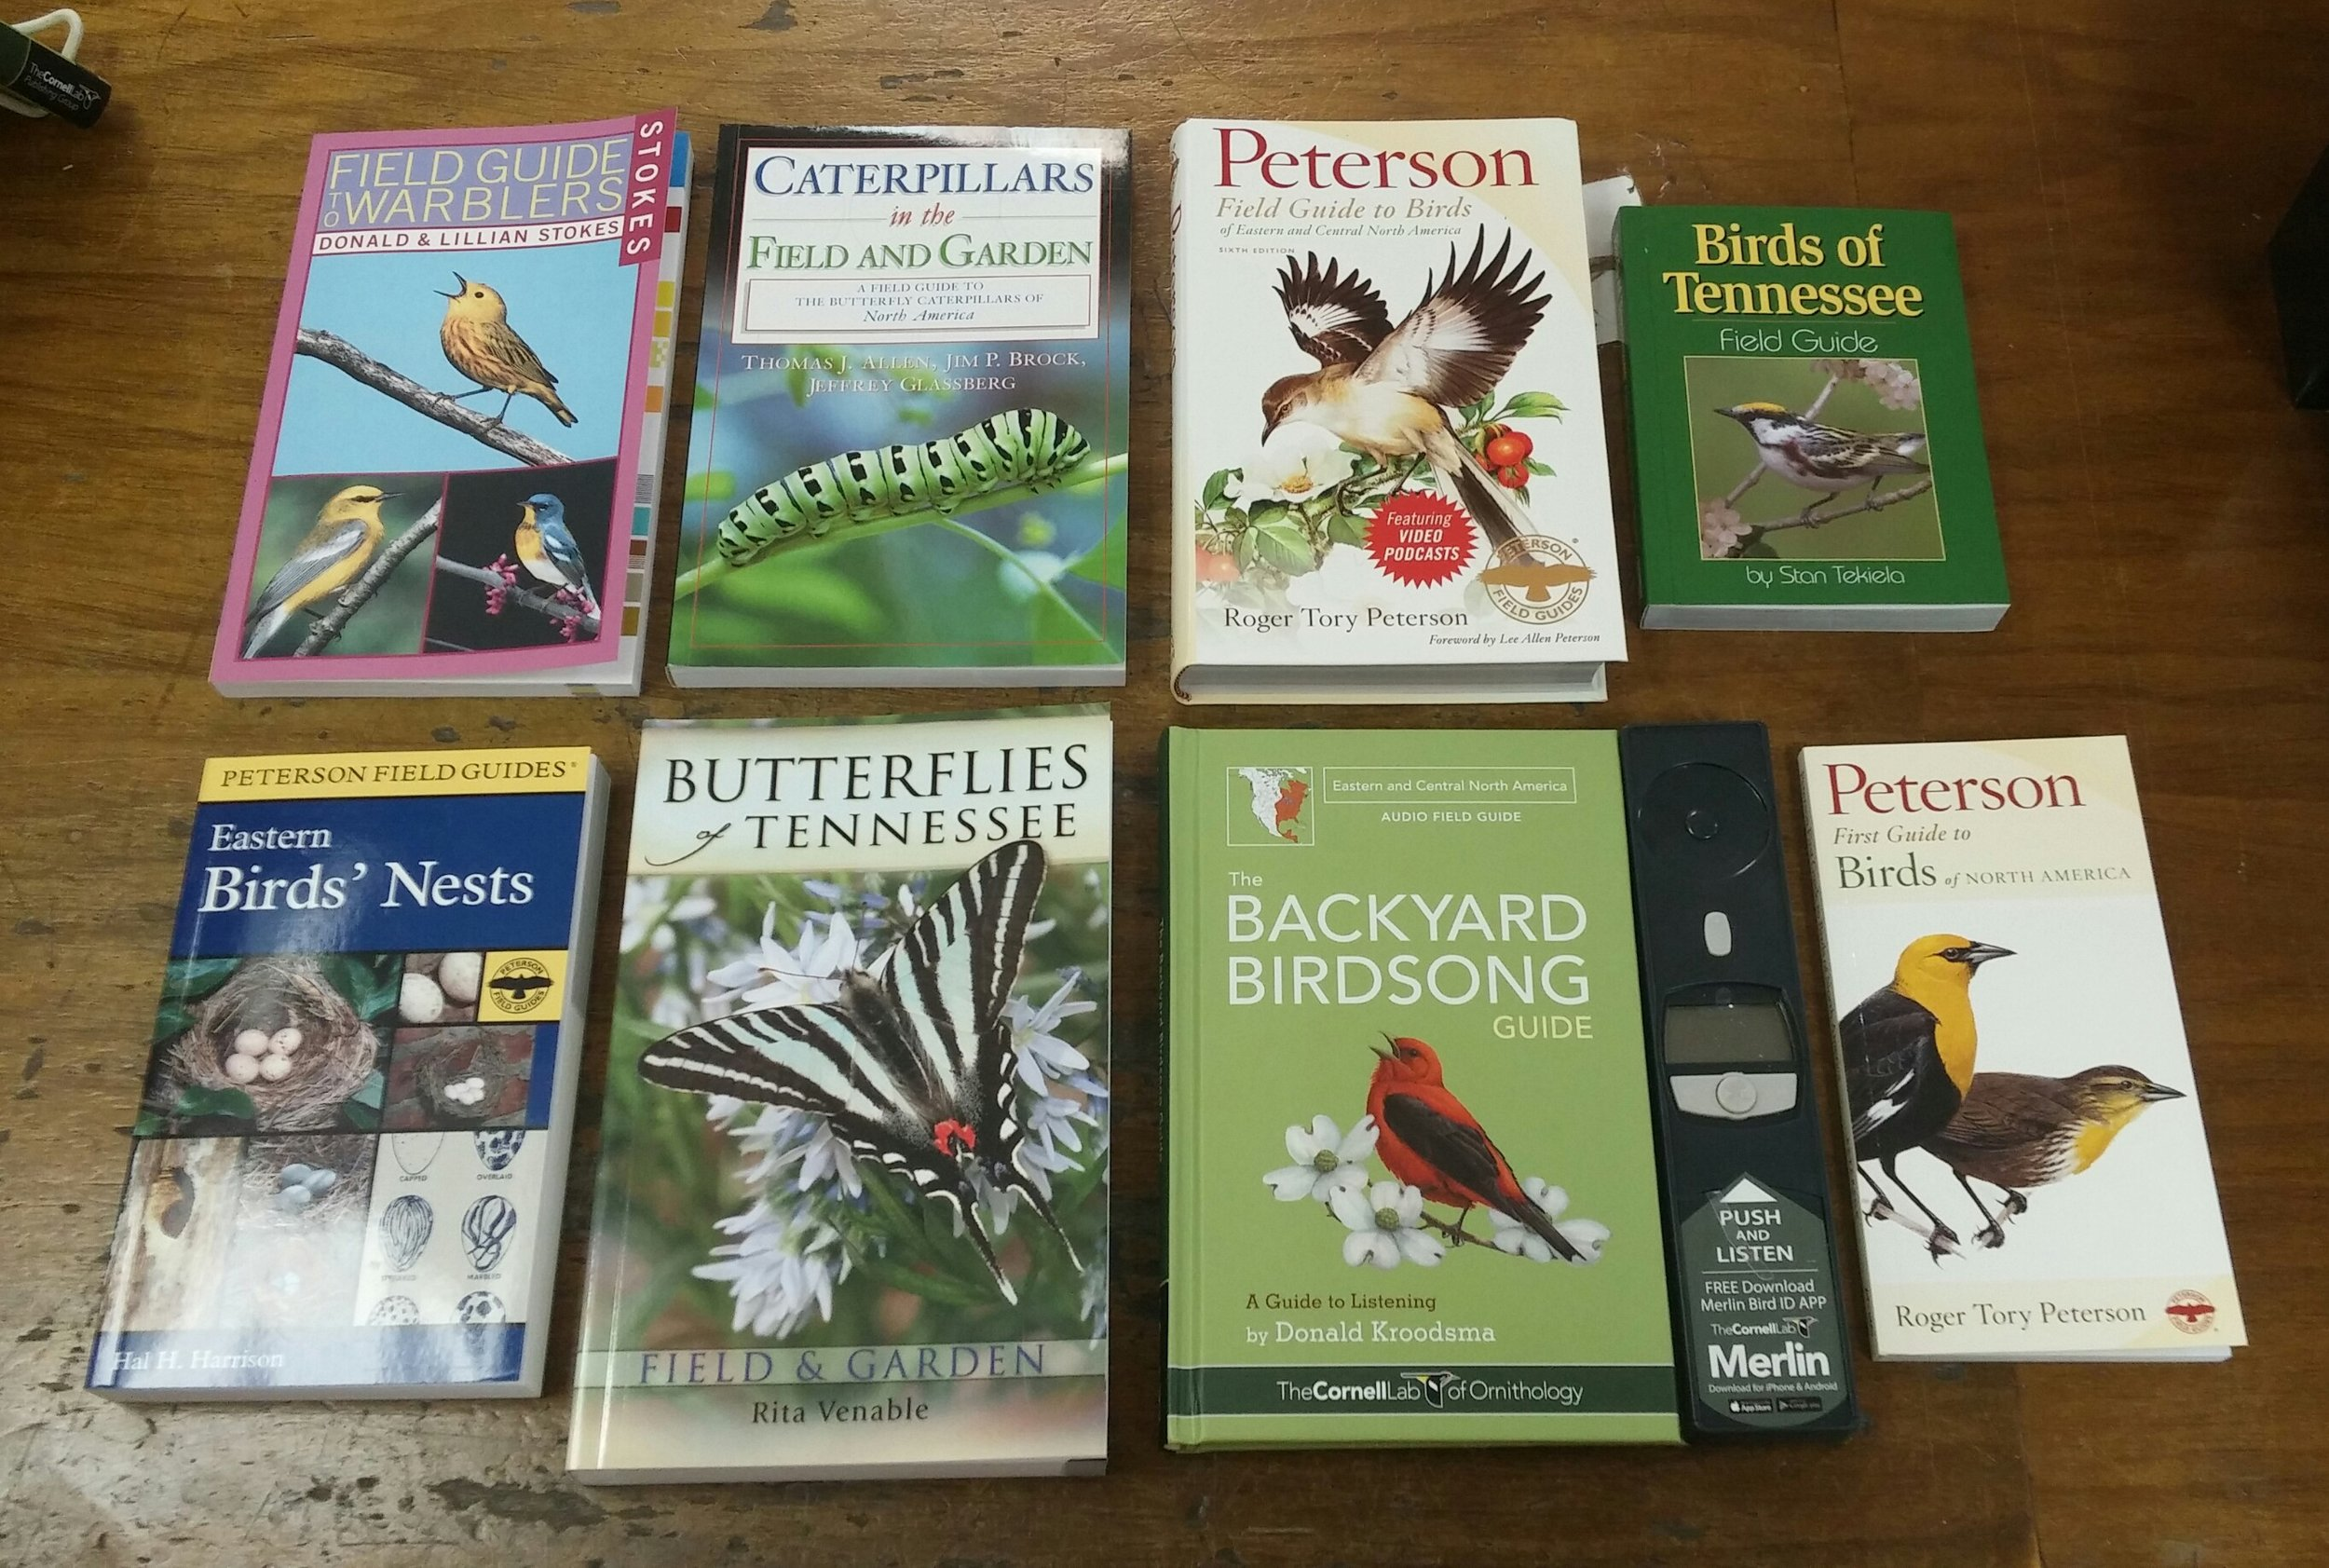 Field guides on birds, bugs, butterflies, and wildflowers.